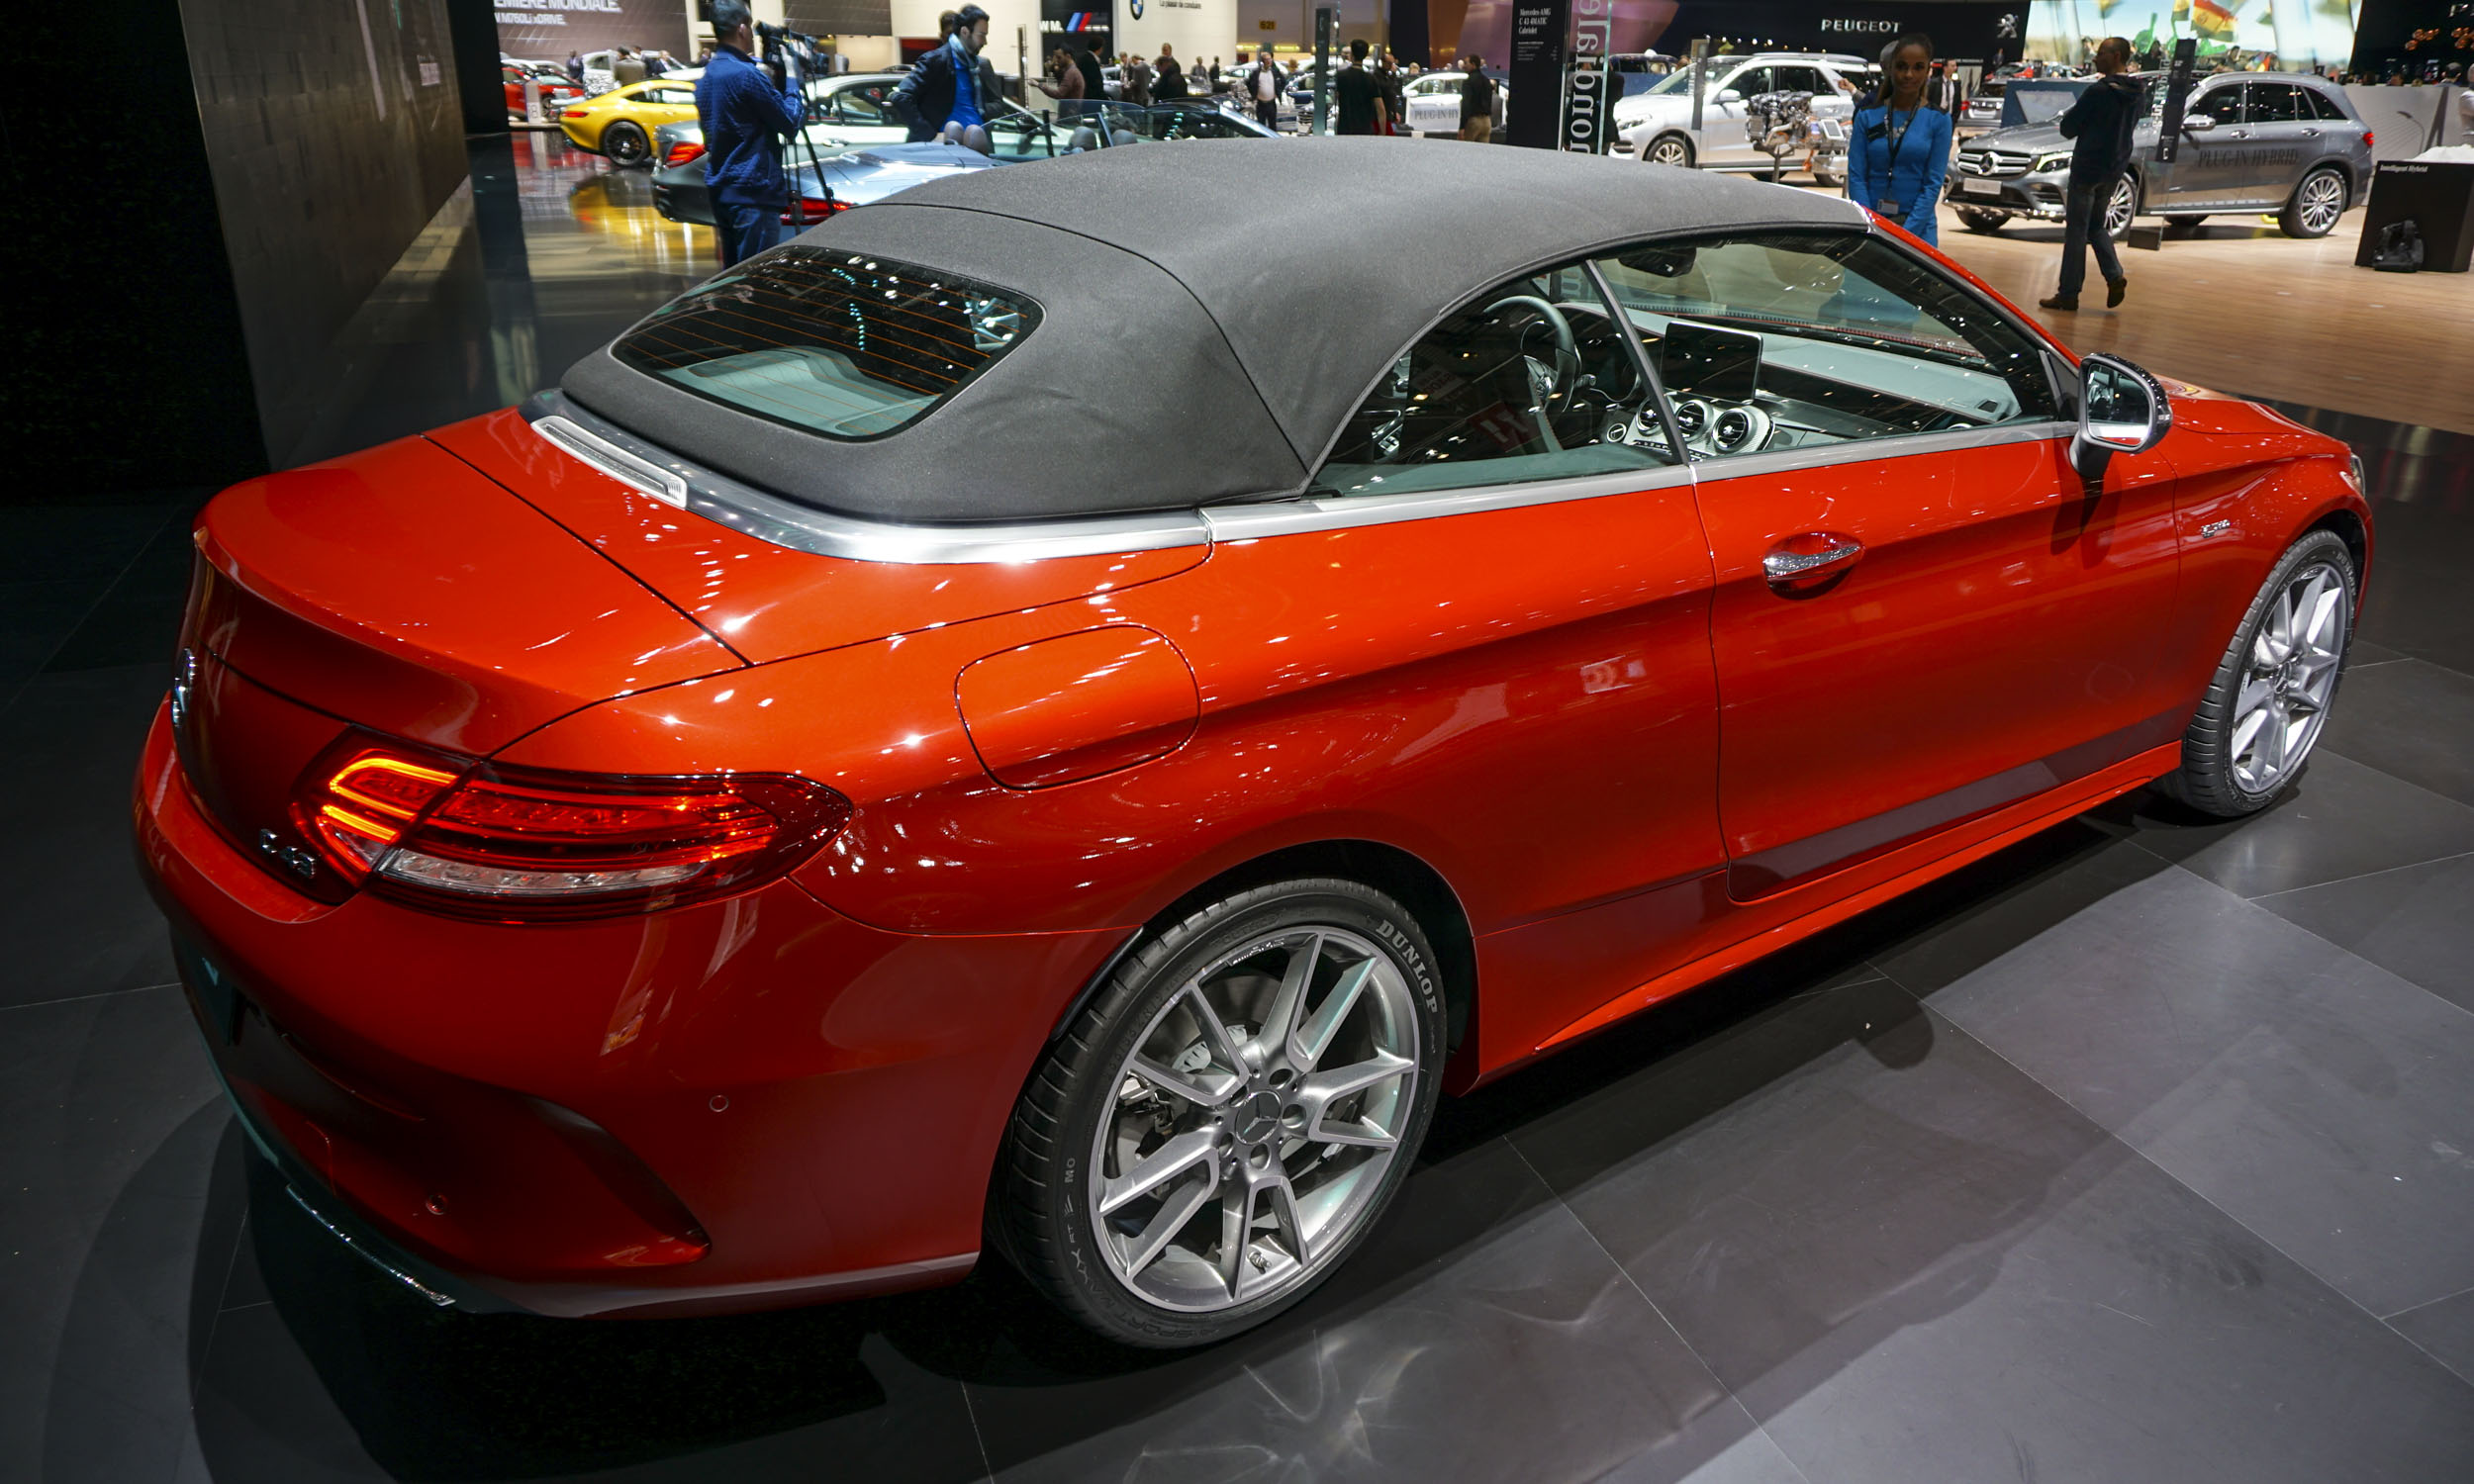 2016 geneva motor show mercedes benz c class cabriolet. Black Bedroom Furniture Sets. Home Design Ideas